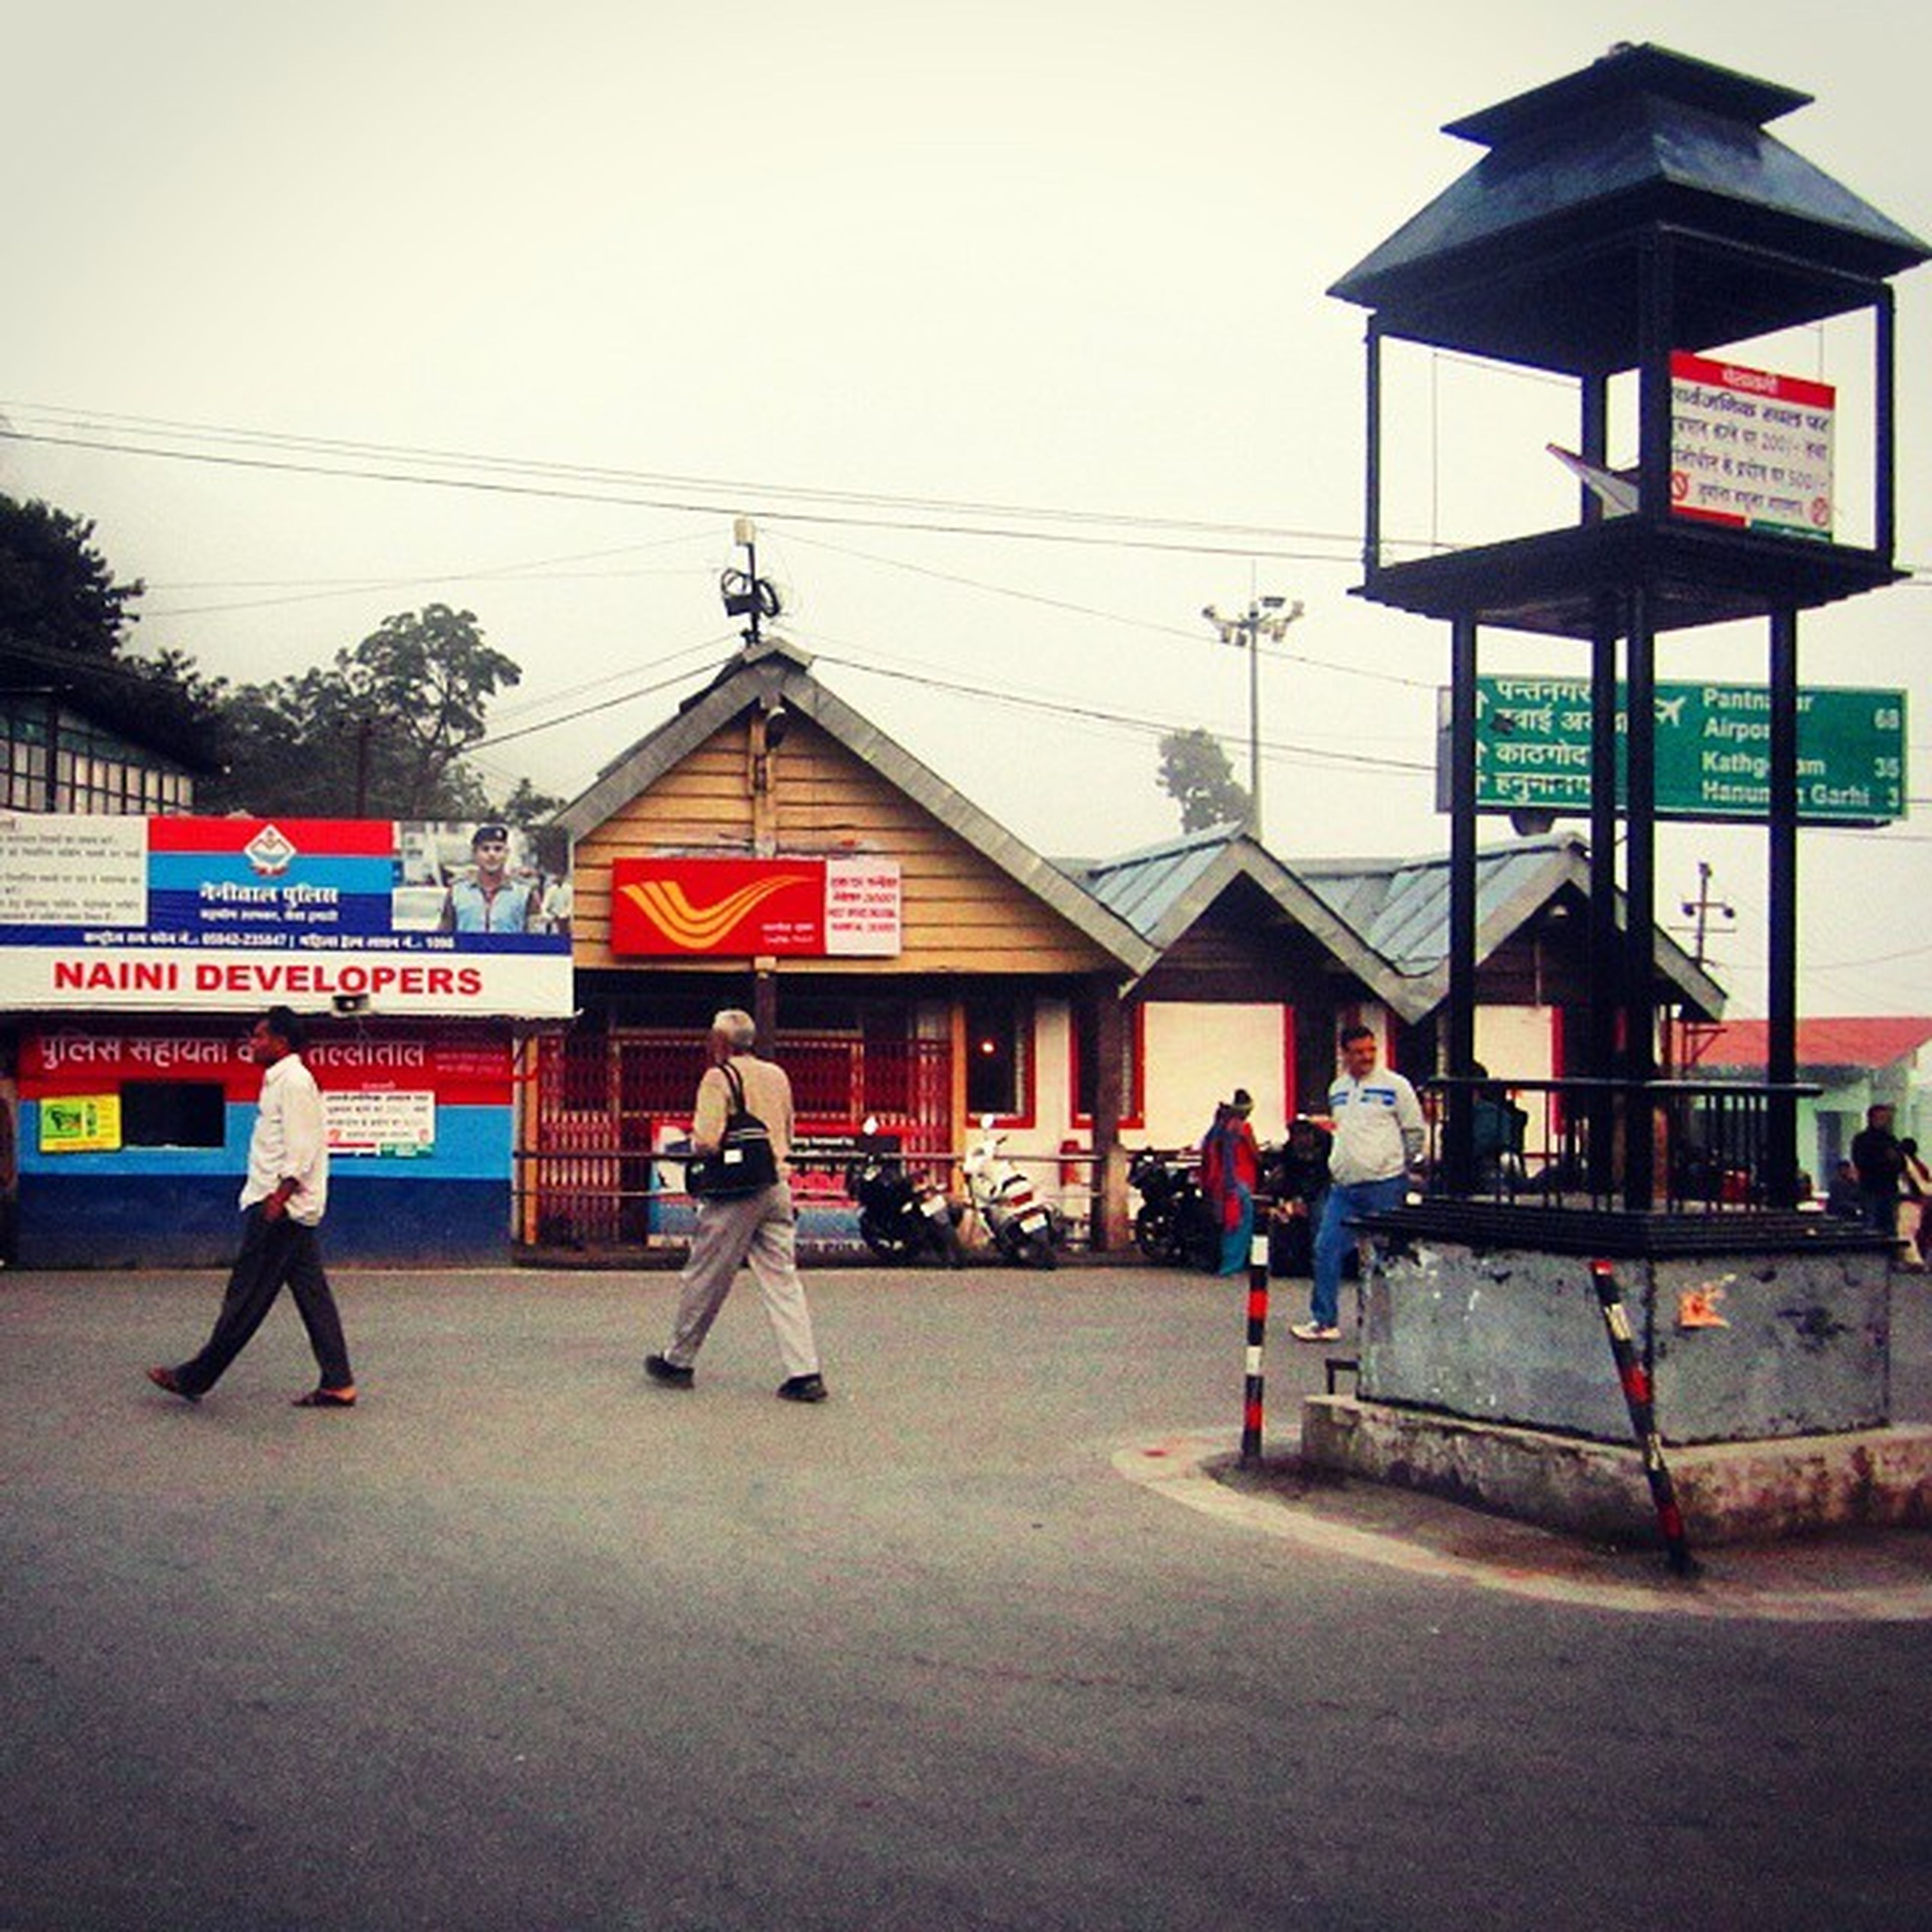 Entrance to the paradise ,Nainital Colorful Street Photography Simpleandpure Silence Instamood Instatravel Instagrammer BusyPeople Police Postoffice Hillstation Nainital City Mainentrance Trafficpost Clouds Abstract Random Walk Old Architecture English _soi Indiatravelgram IndiaPicturesincredibleIndia